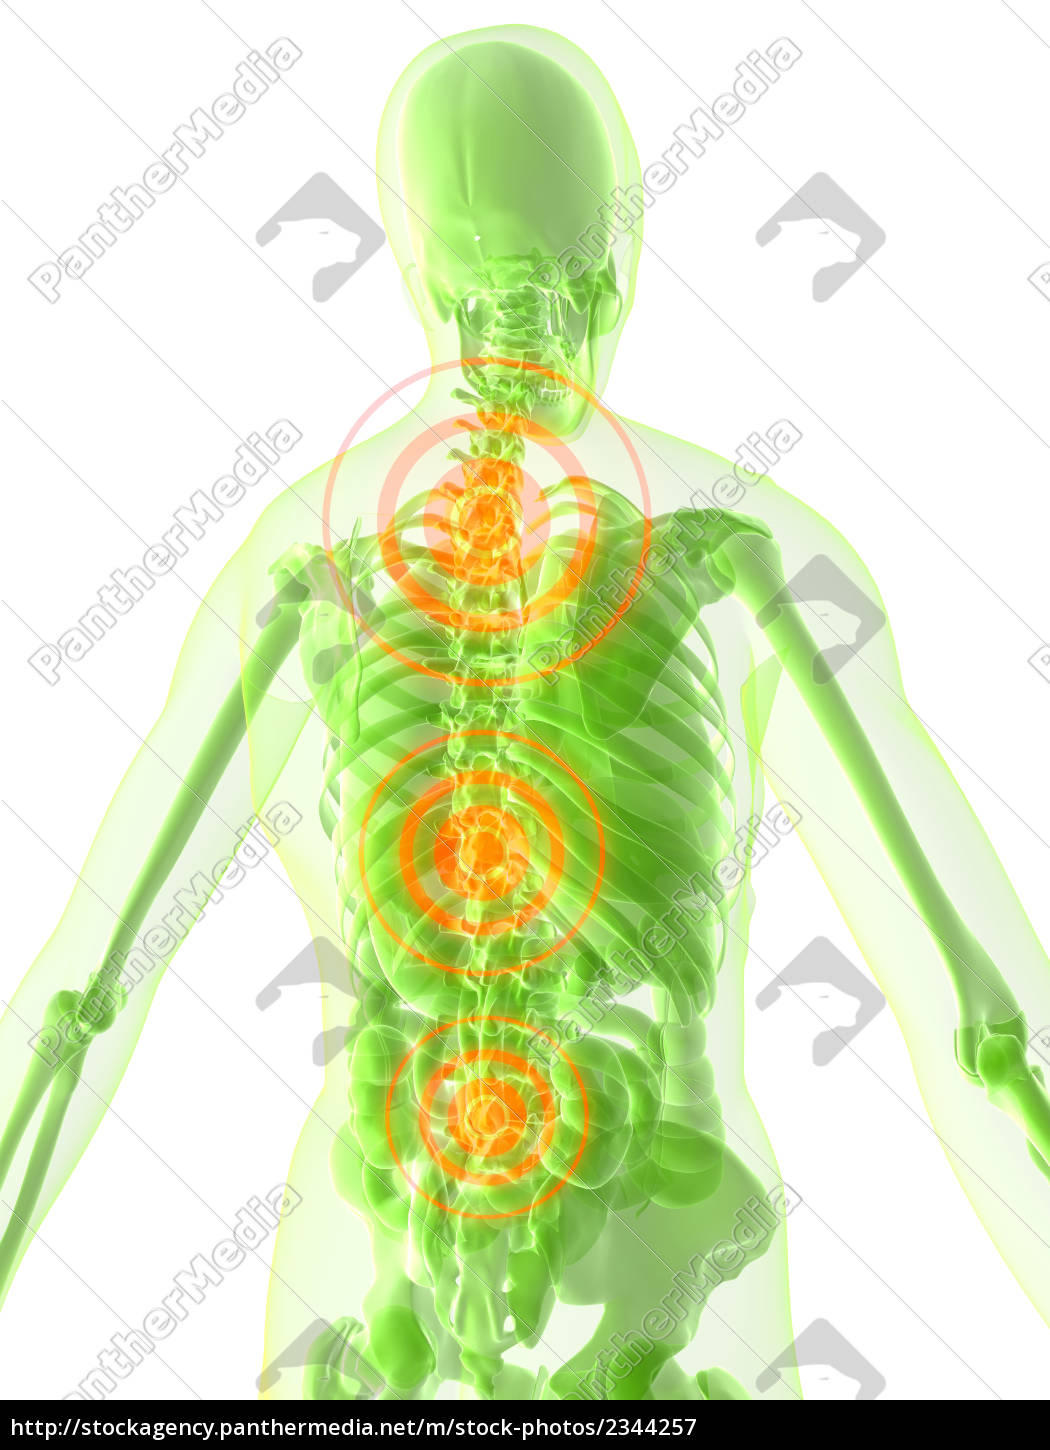 Human Anatomy With Highlighted Spine Royalty Free Image 2344257